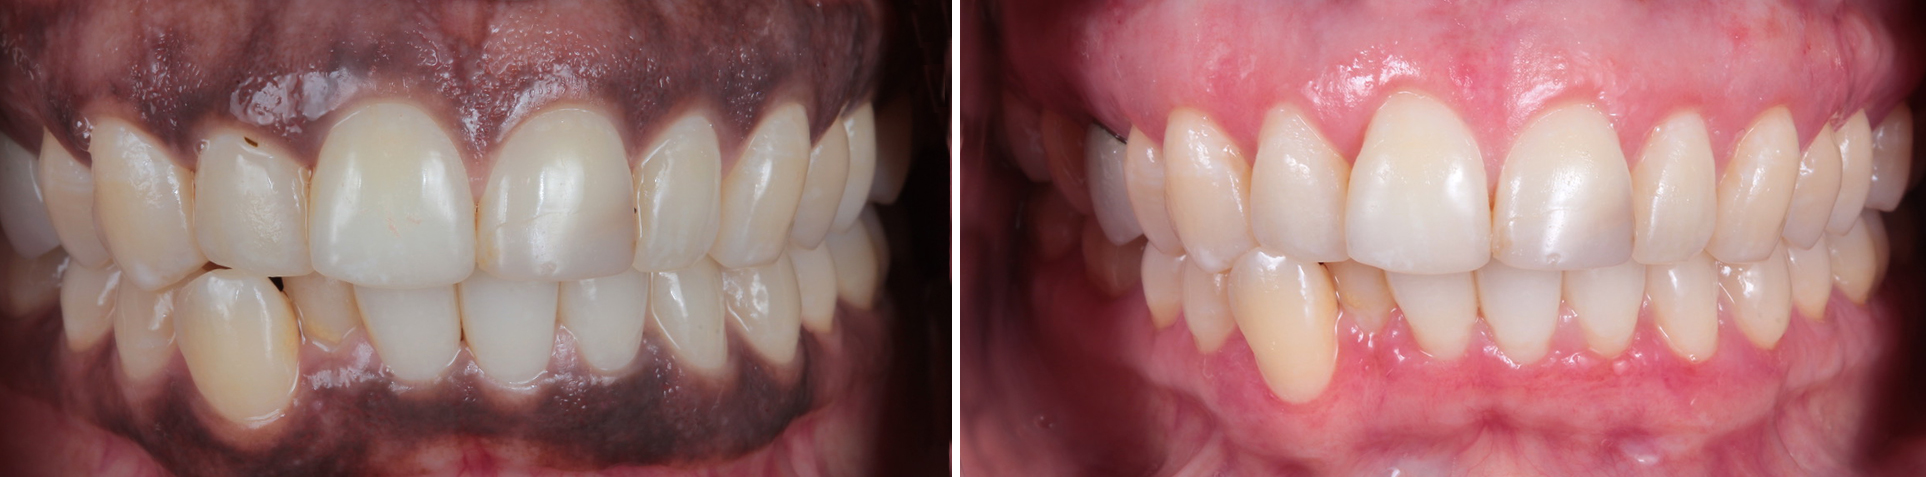 Image of Multiple Dental Implants Before and After by Dr Aalam and Dr Krivitsky at Implant Perio Center Westwood Los Angeles